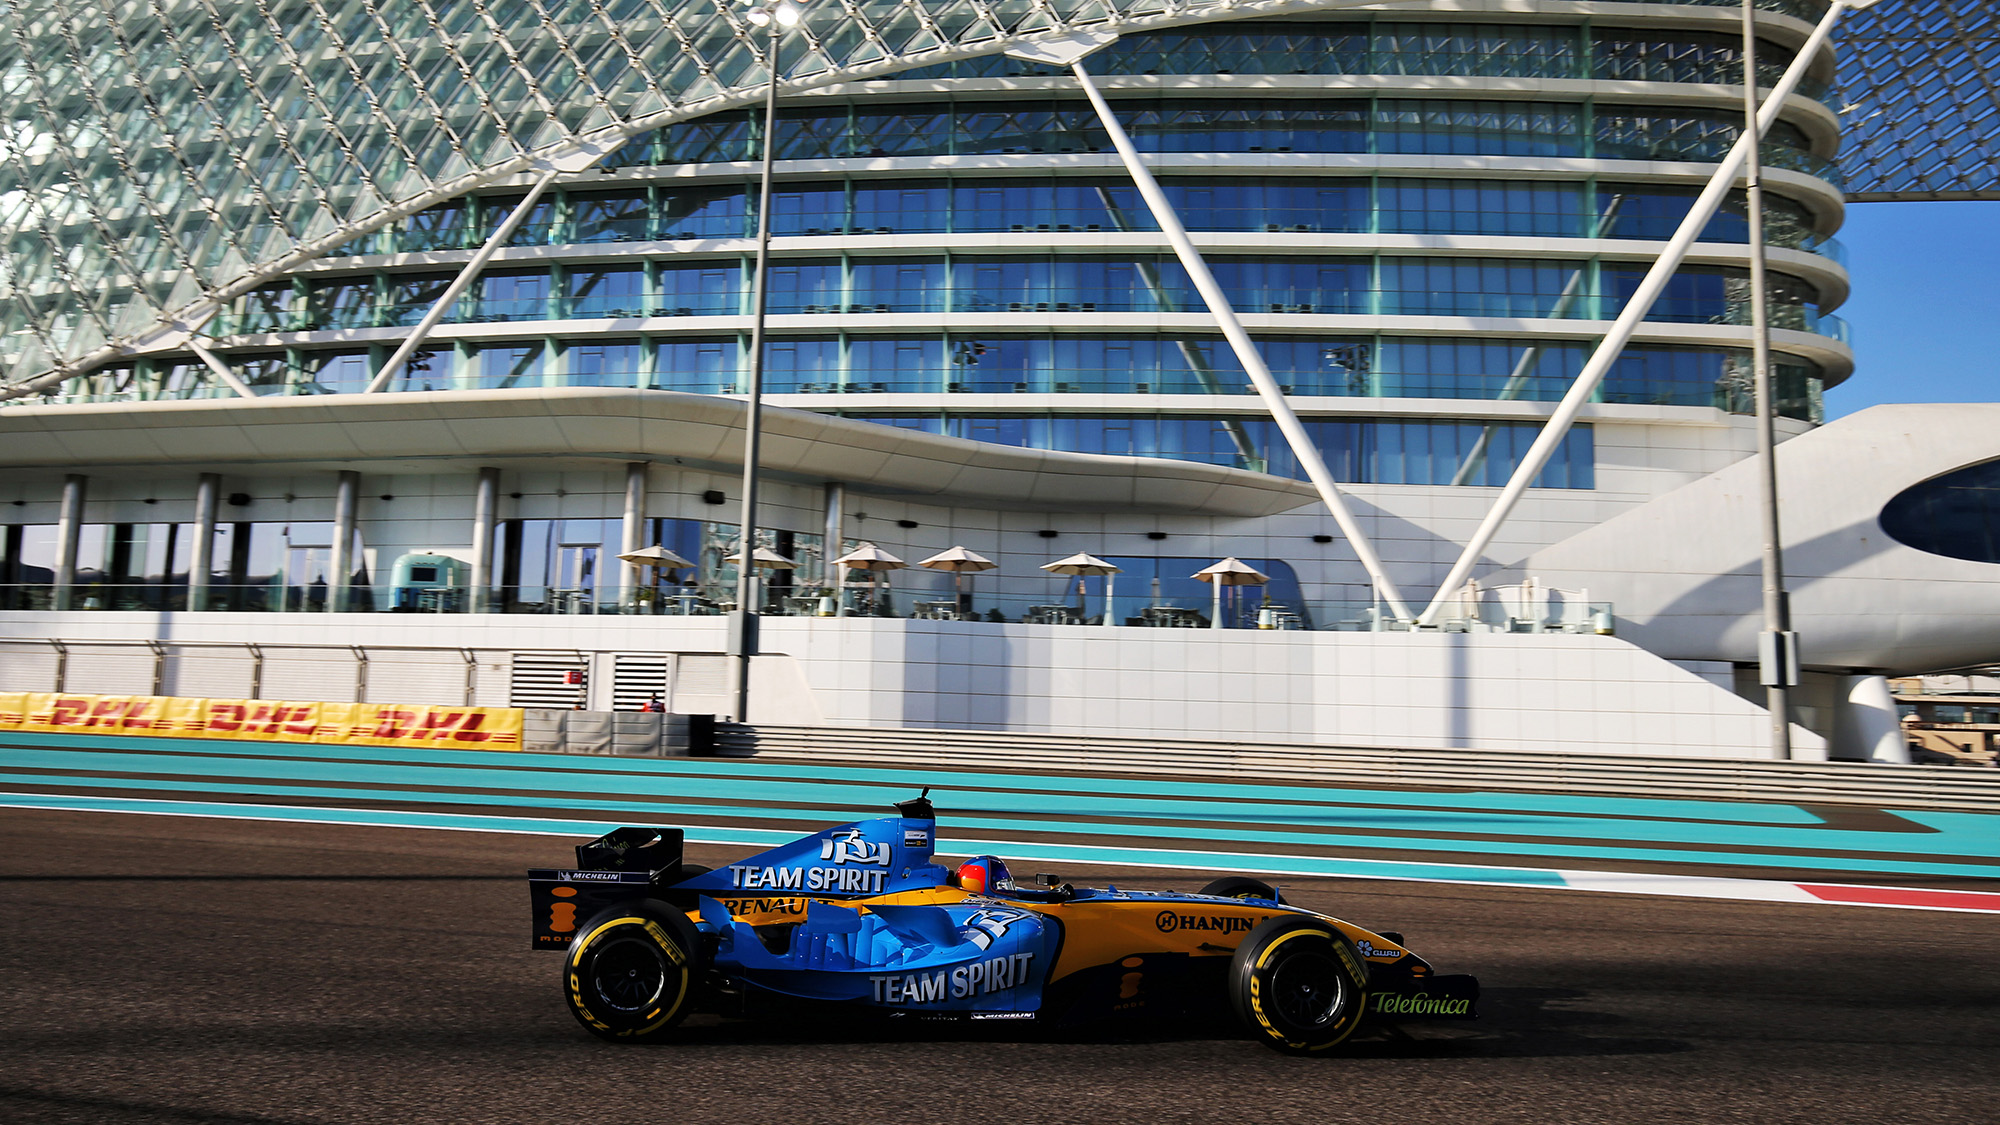 Fernando Alonso oin the Renault R25 at Abu Dhabi in 2020